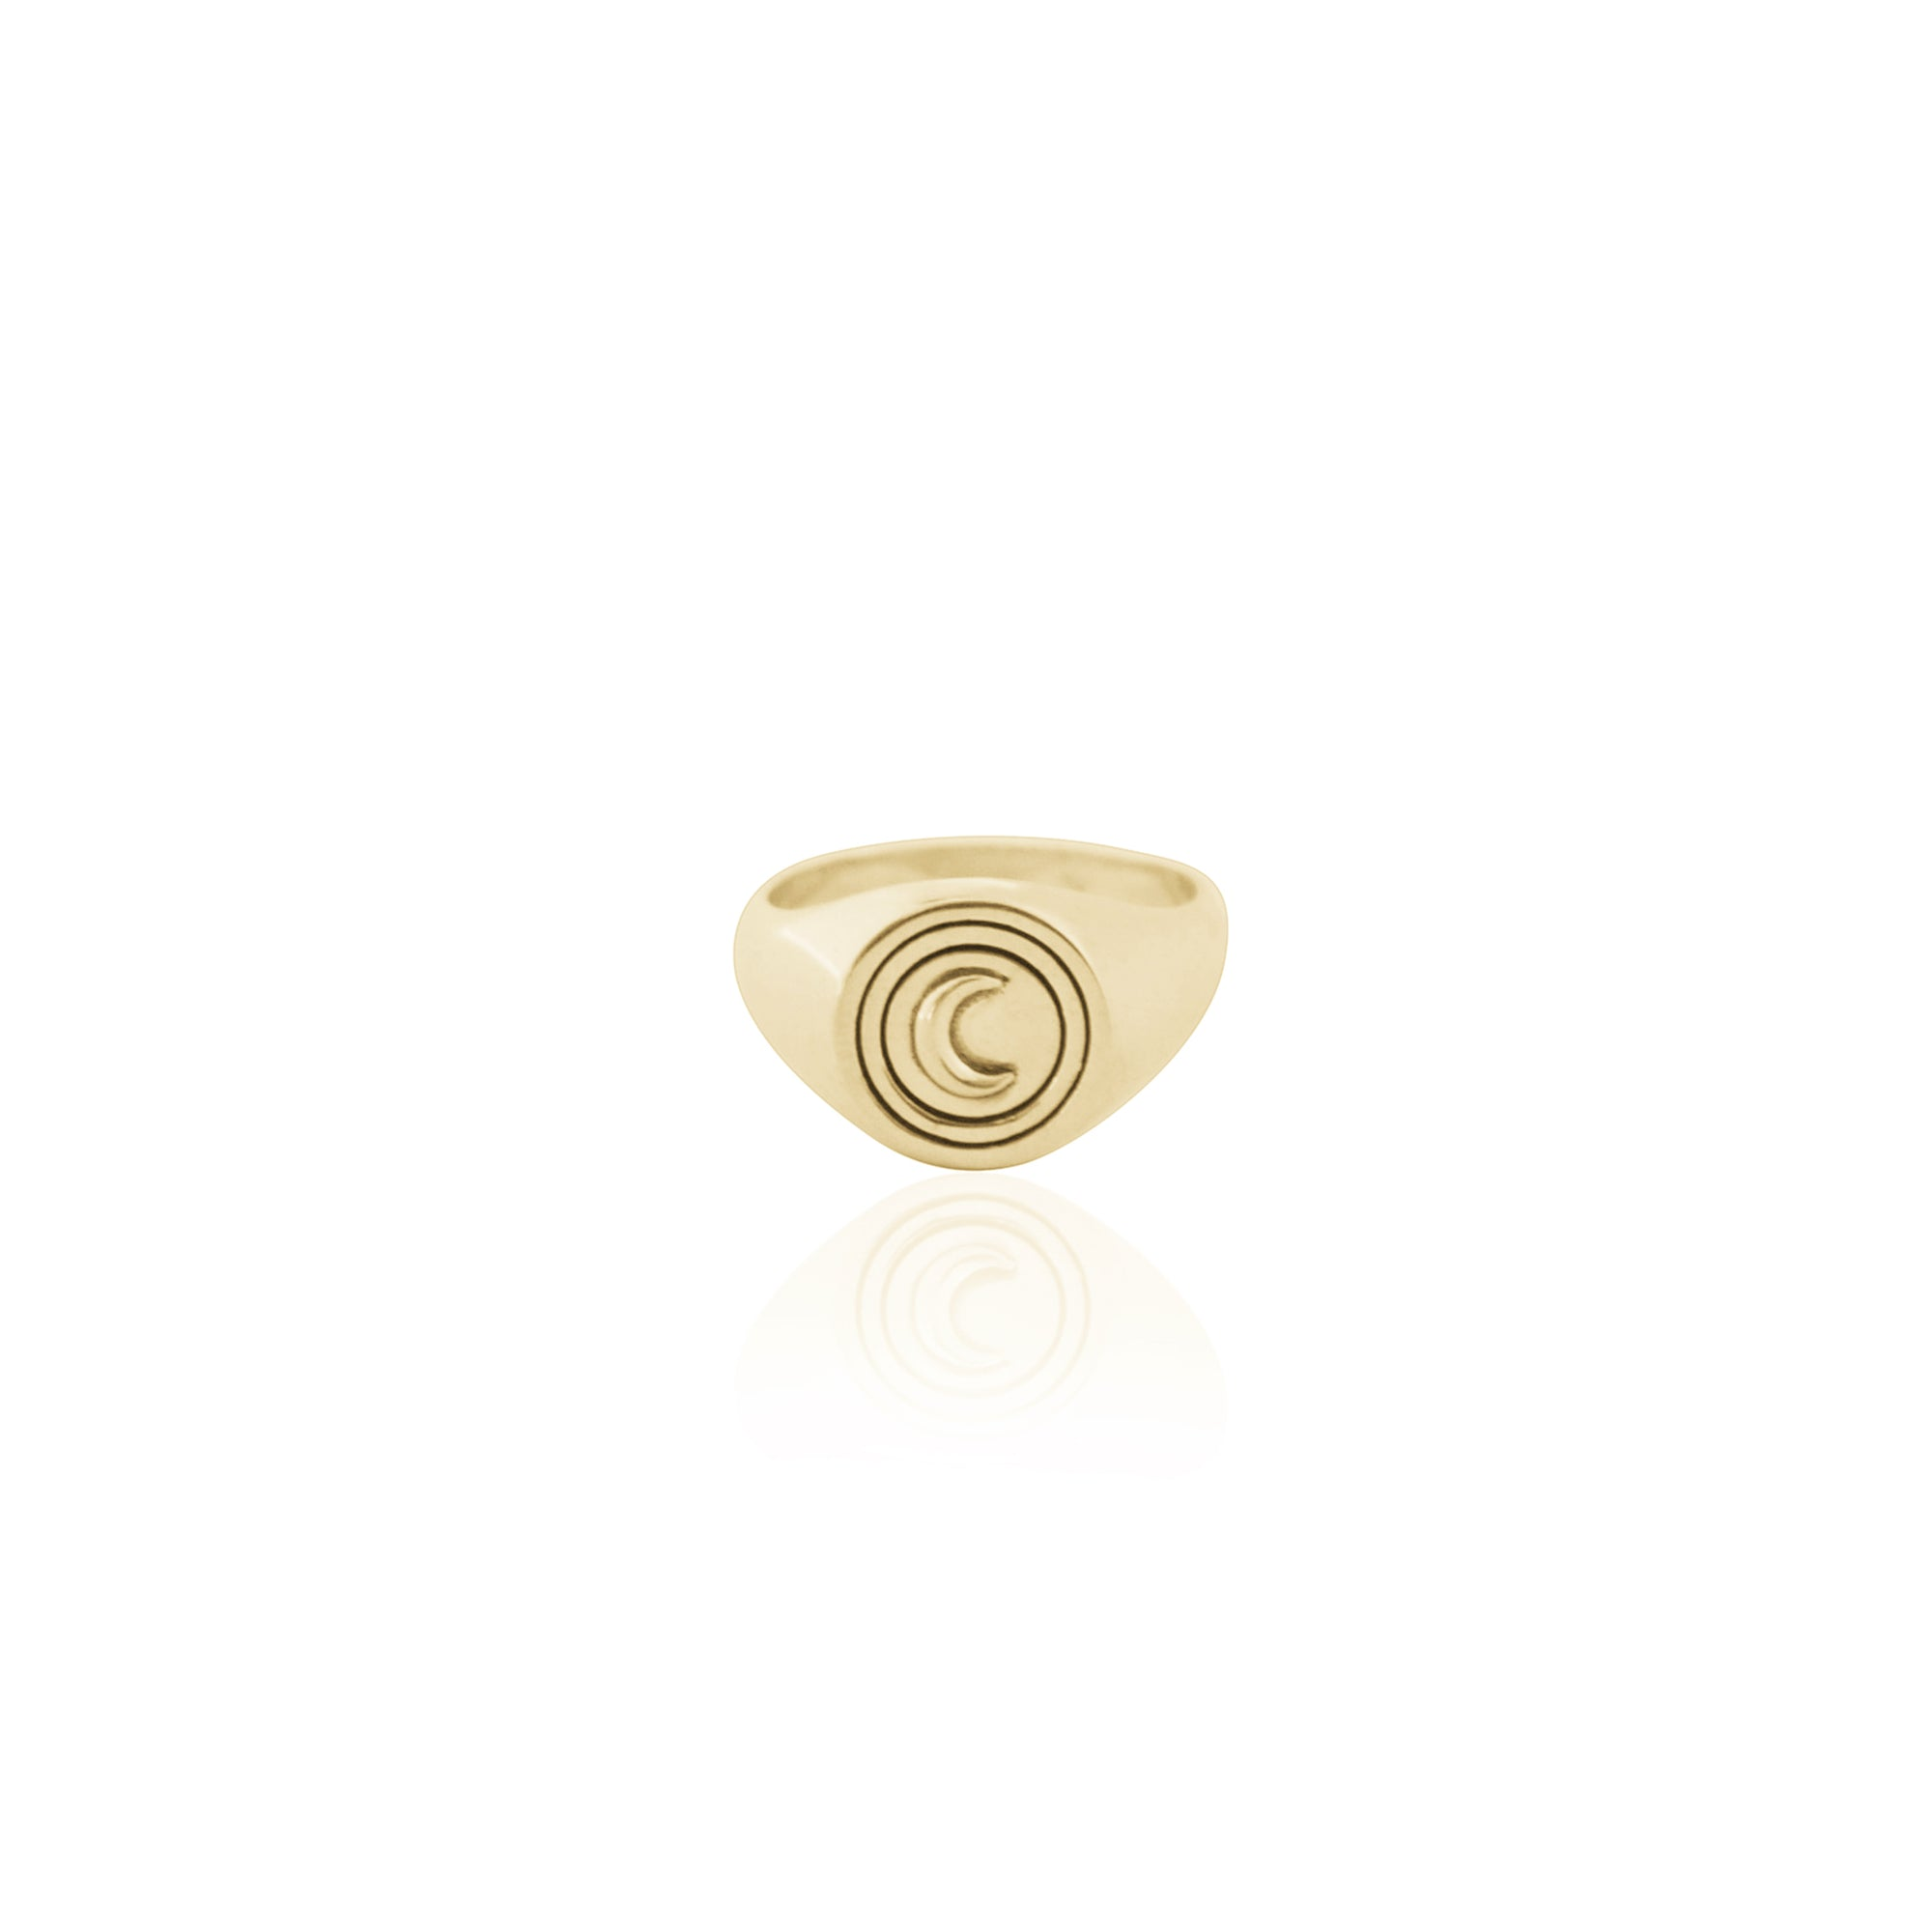 Coconut and Bliss x La Luna Rose Luna Signet Ring - GOLD